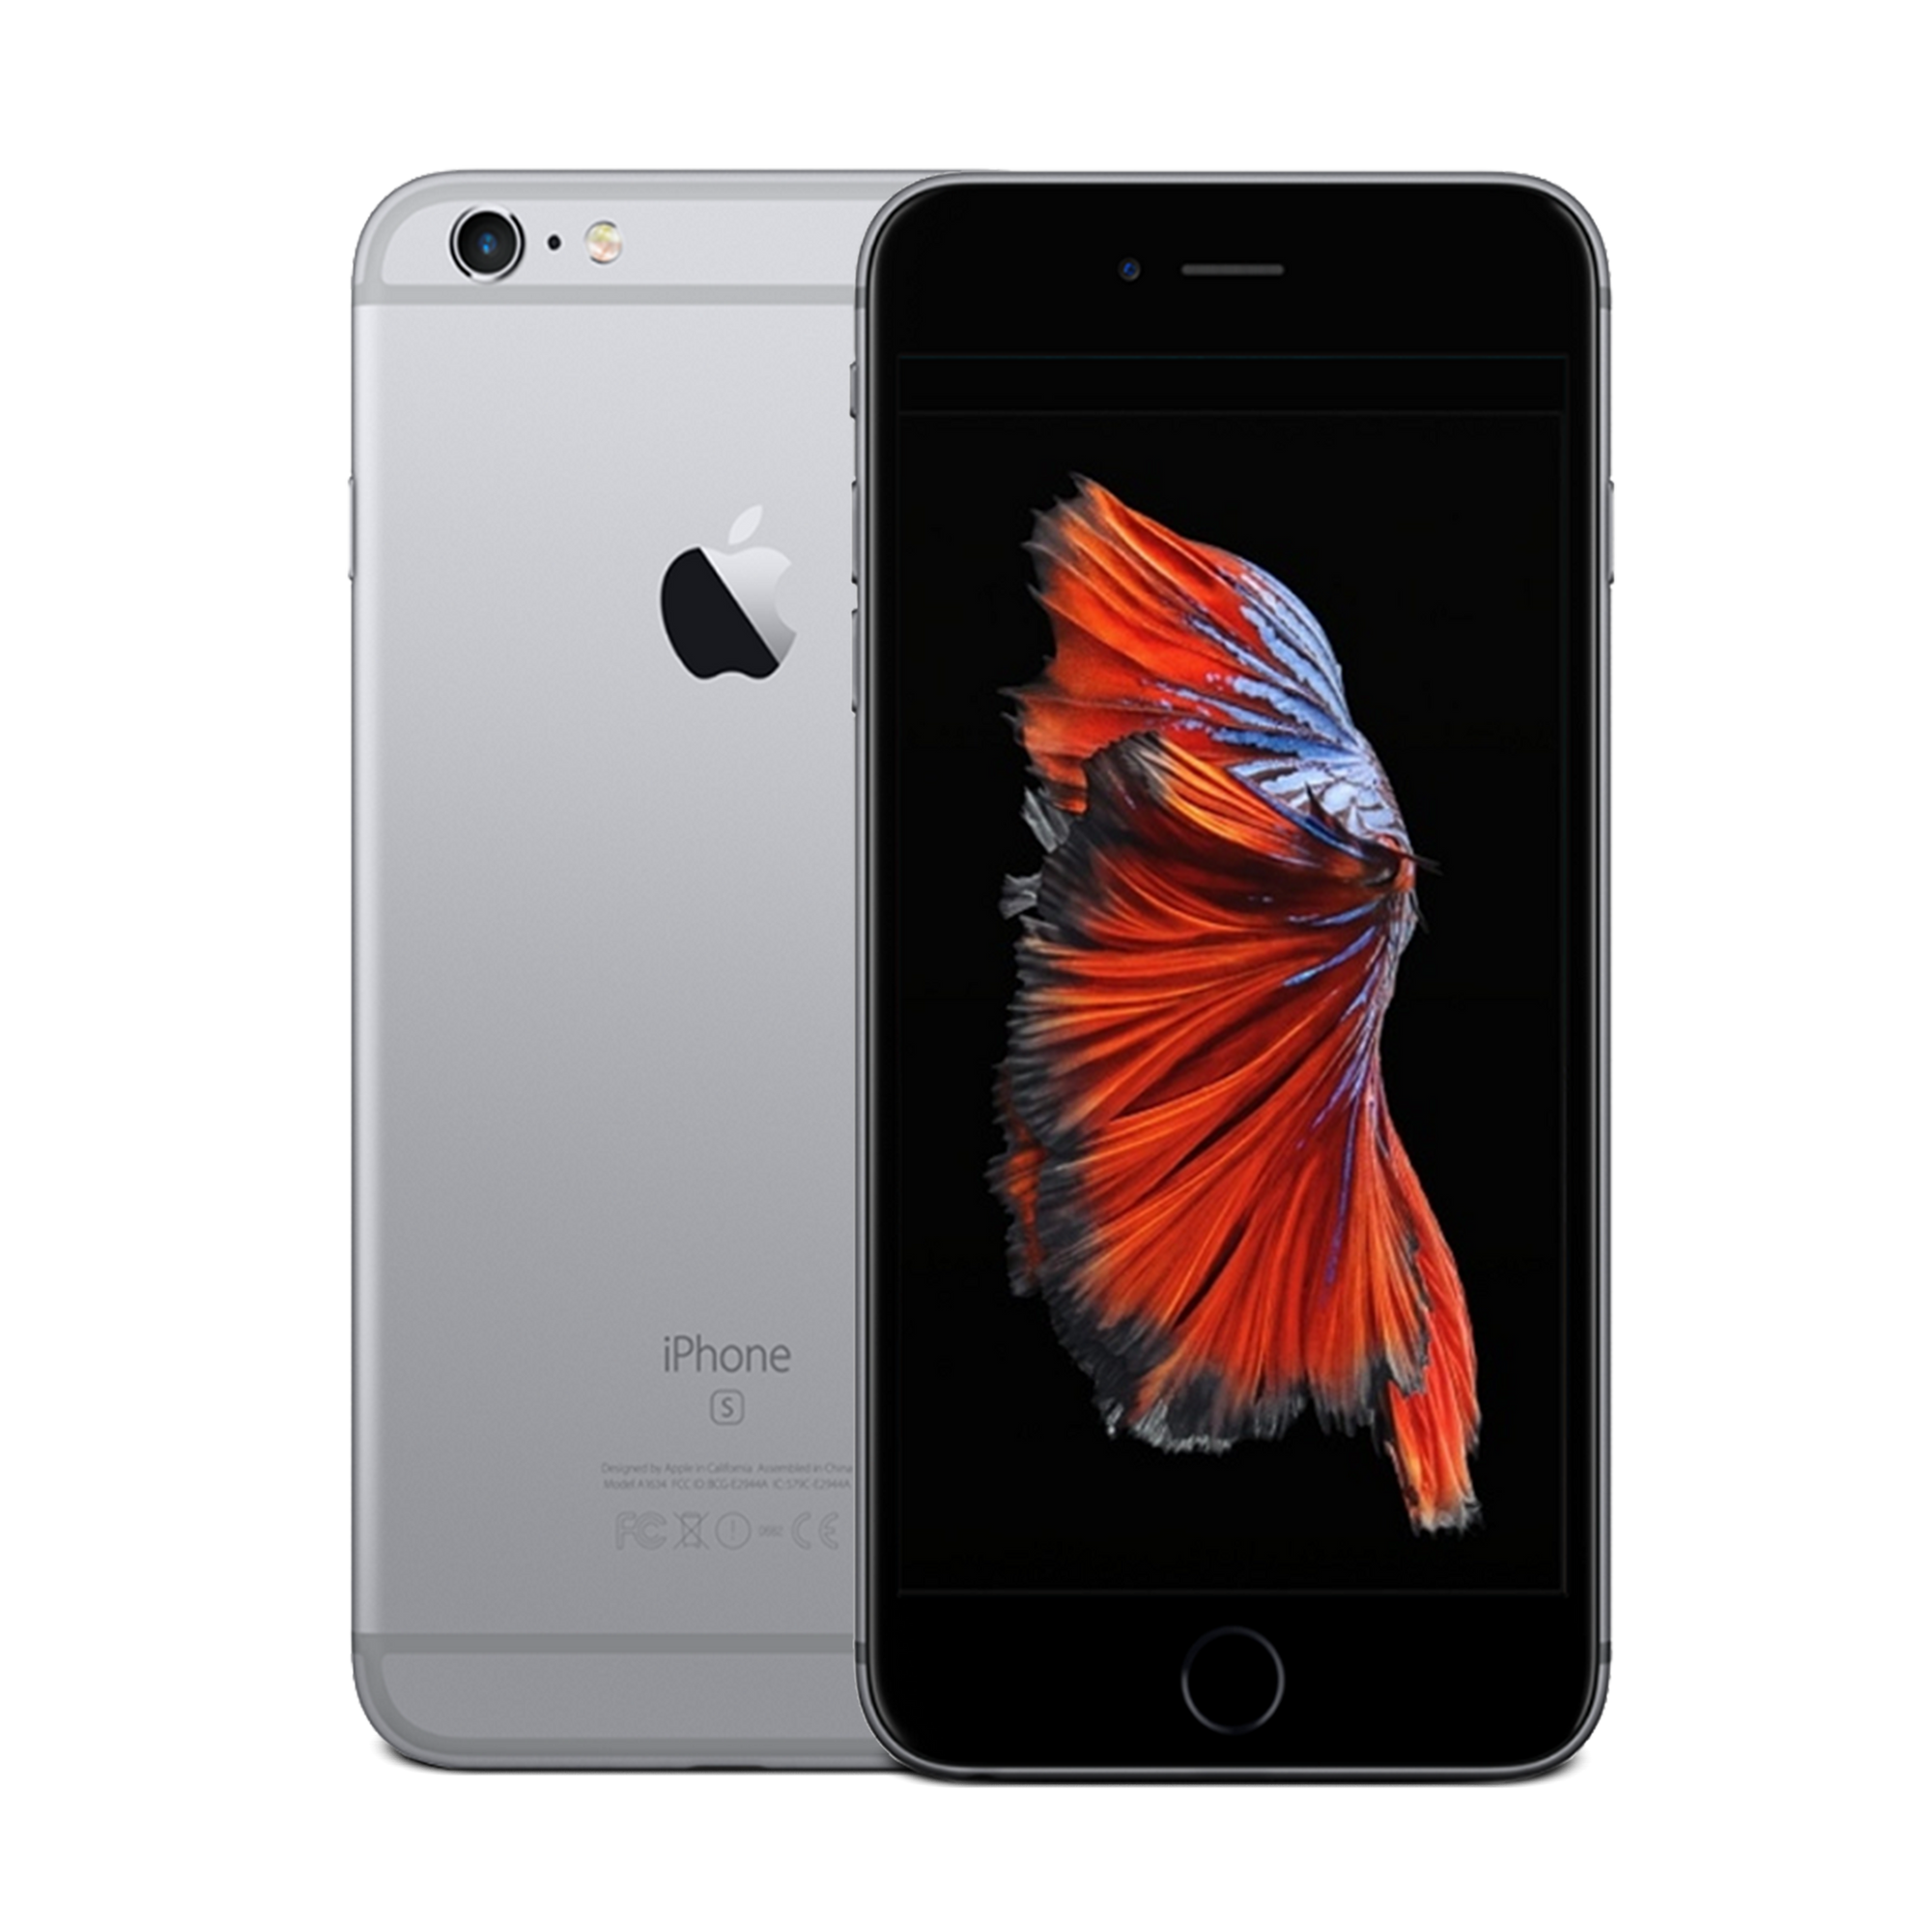 iPhone 6s 16GB Space Grey | Good